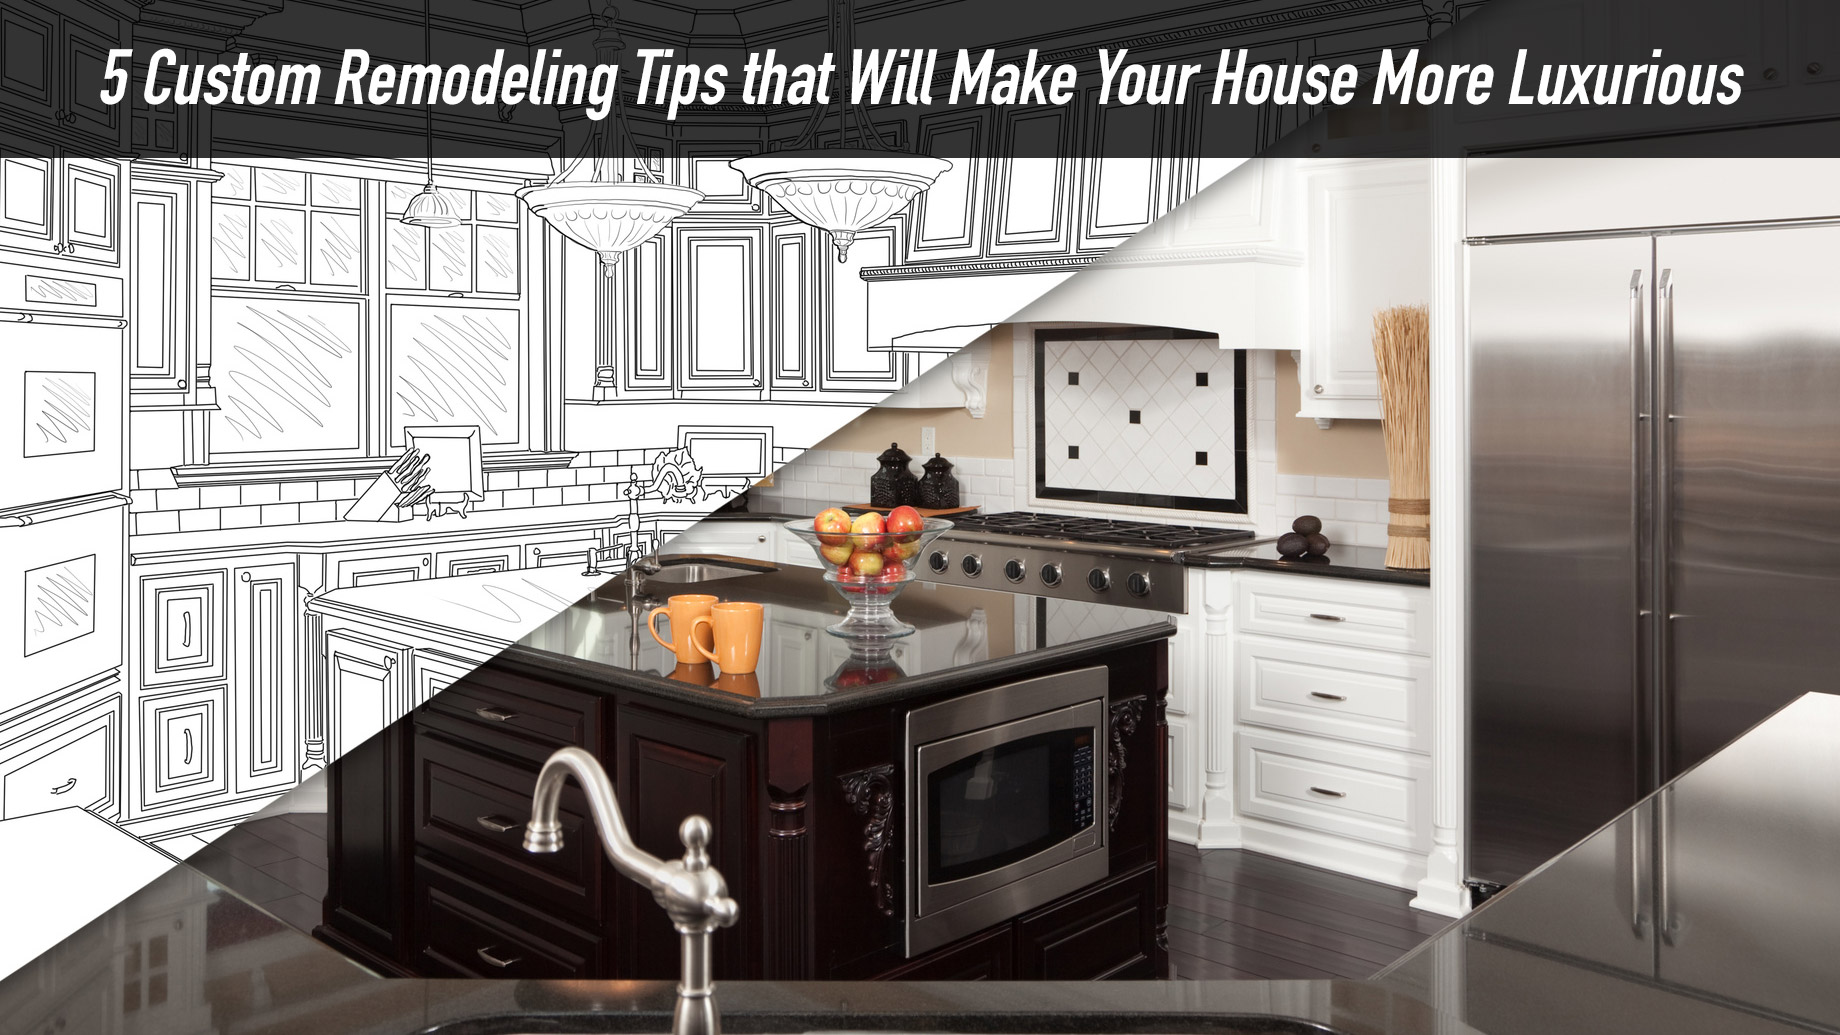 5 Custom Remodeling Tips that Will Make Your House More Luxurious